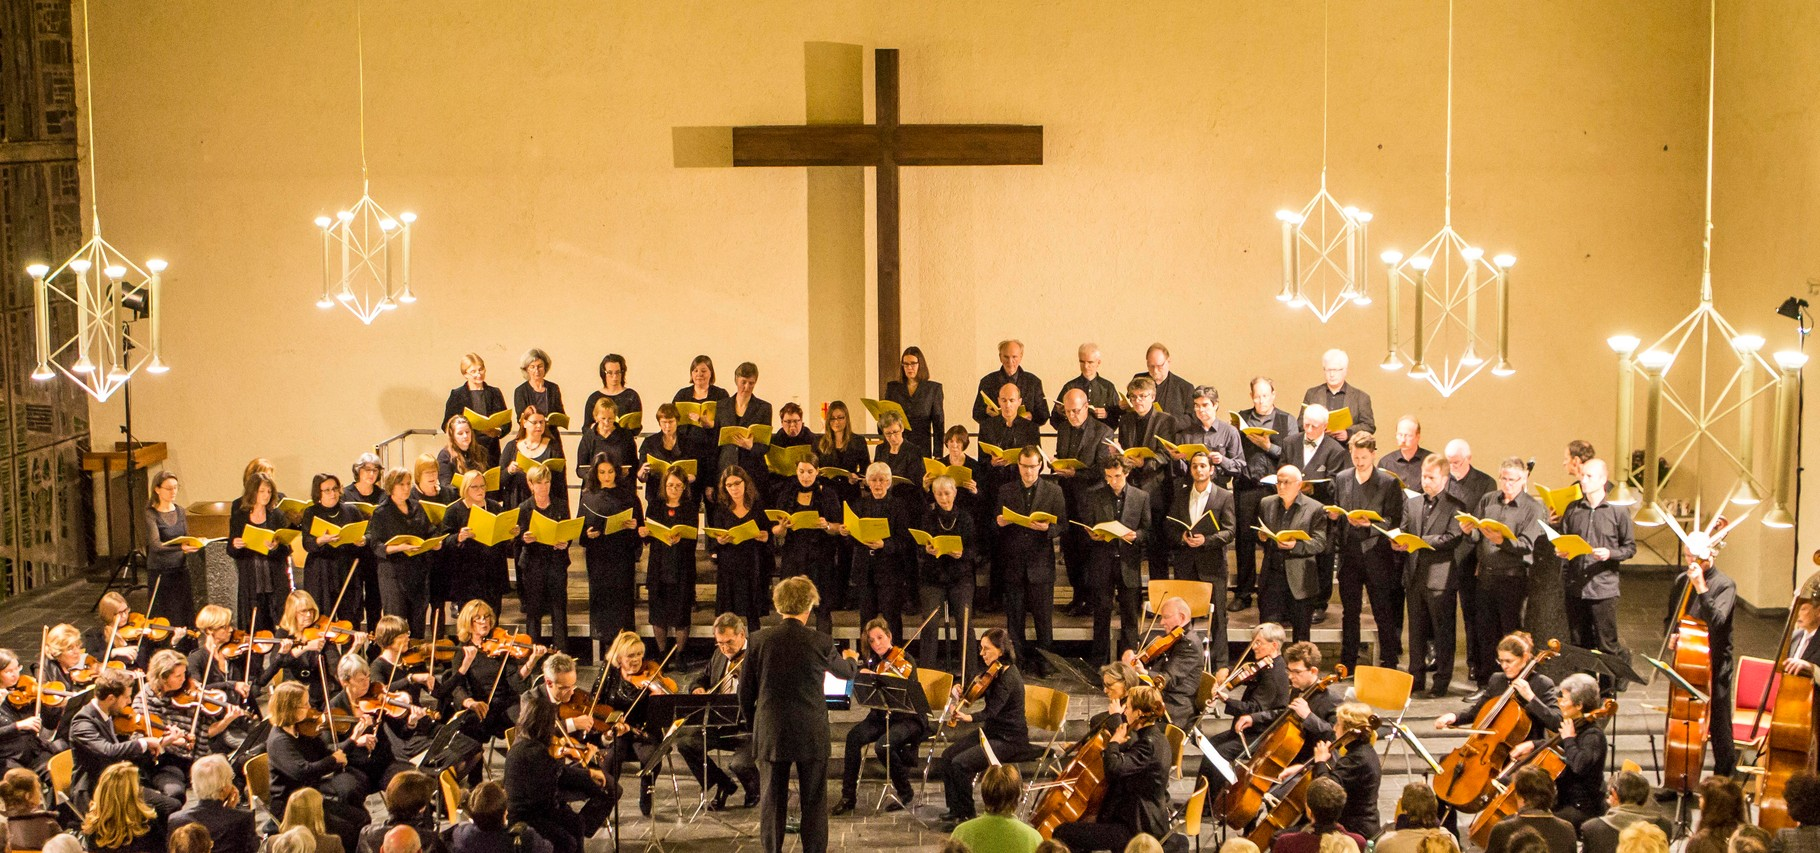 Mansurian Requiem, Bad Vilbel, Heilig-Geist-Kirche, November 2015